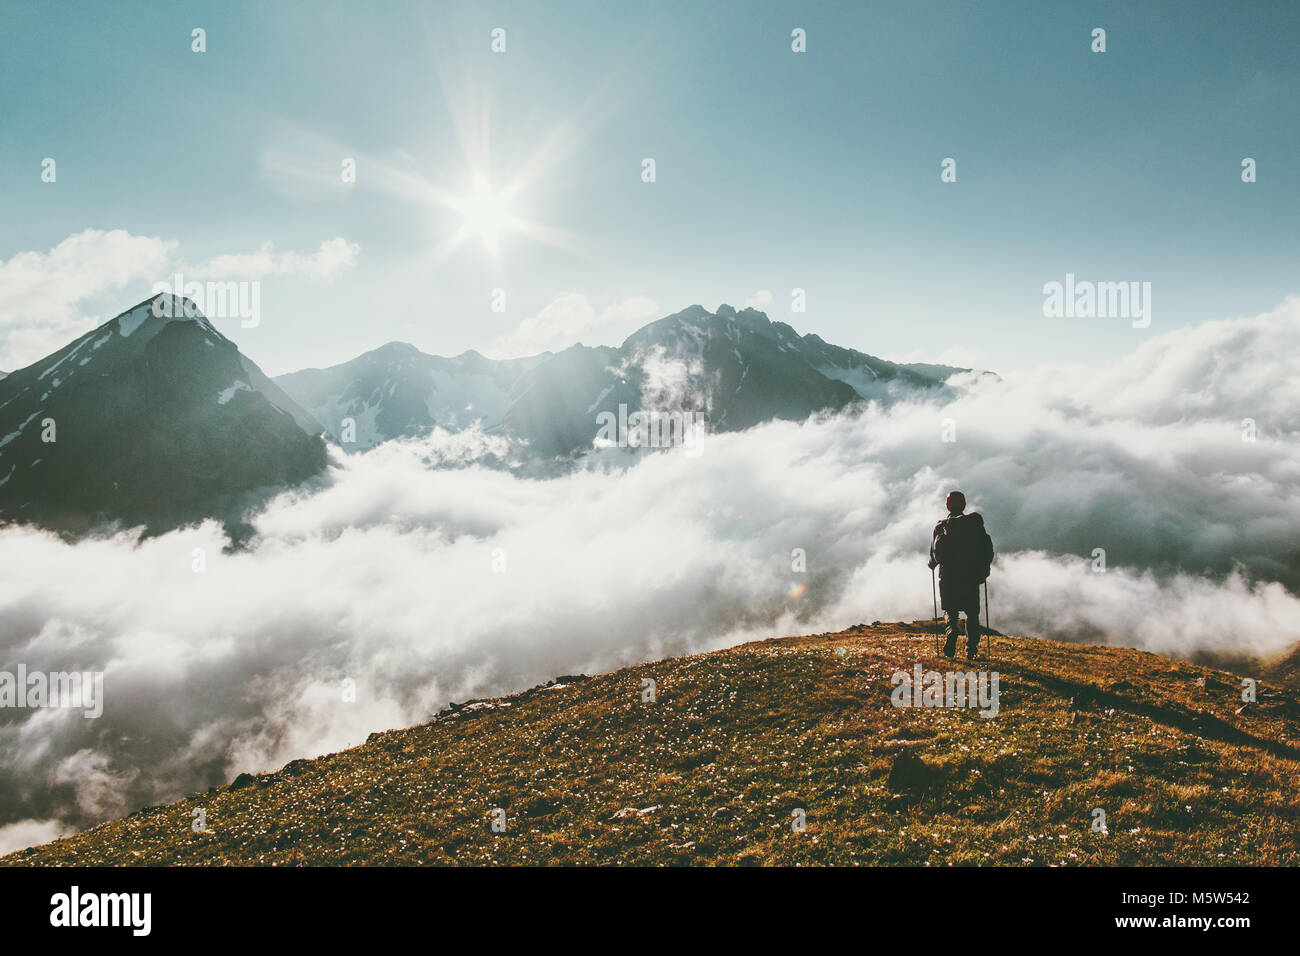 Traveler hiking in mountains clouds landscape Travel lifestyle adventure concept summer vacations outdoor - Stock Image